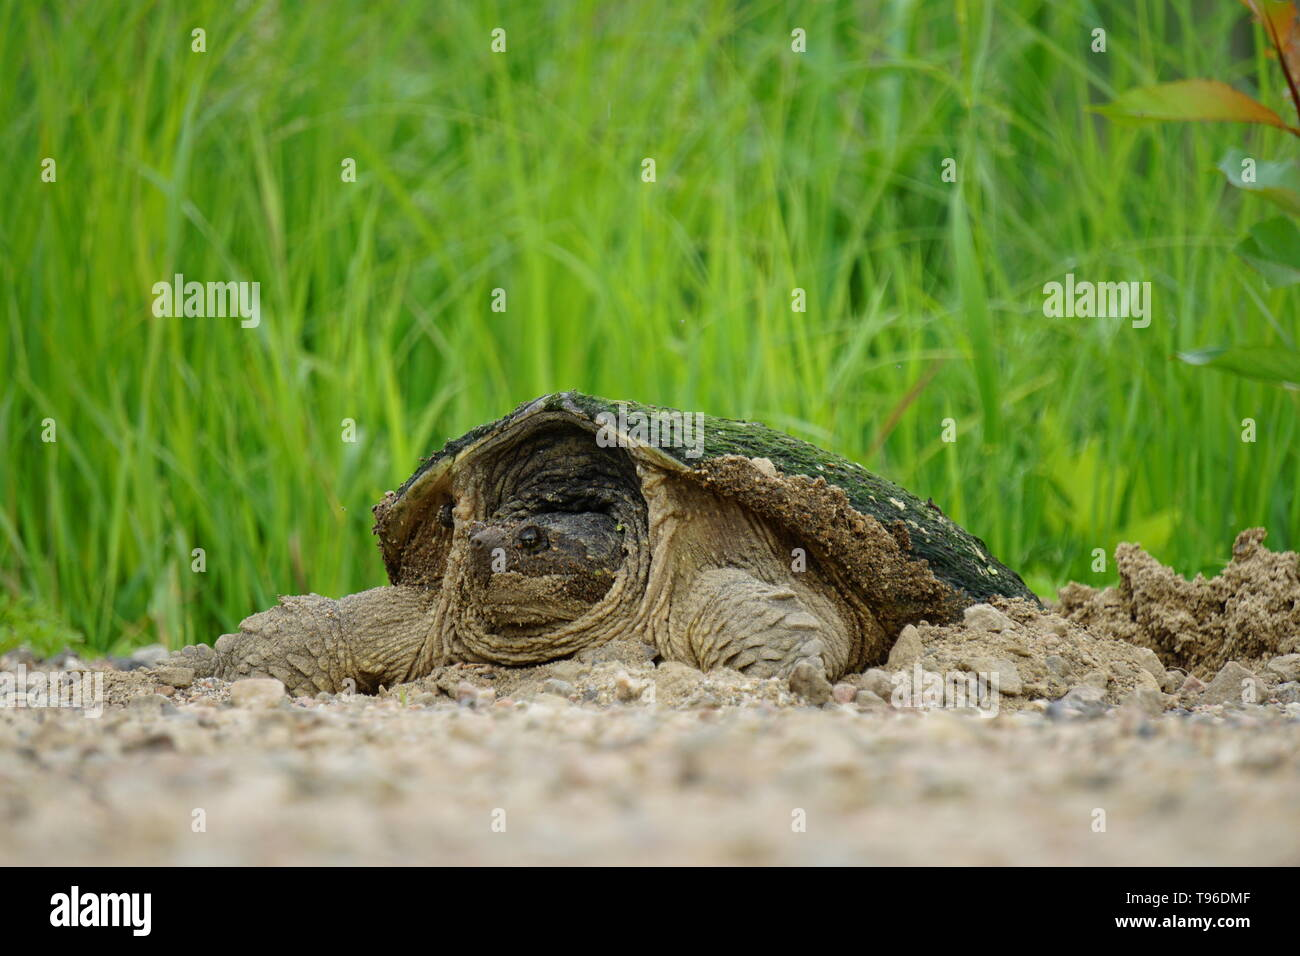 Snapping Turtle (Chelydra Serpentina) laying eggs in a gravel road by a swamp, St. Joseph Québec, Canada Stock Photo